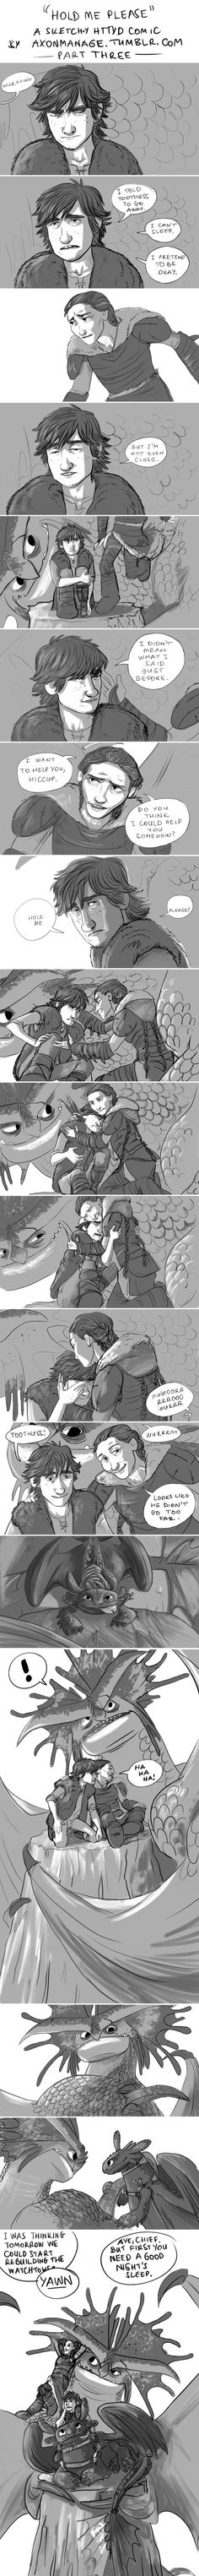 Hold Me Please - a sketch-y HTTYD comic-part three by axondrive on deviantART